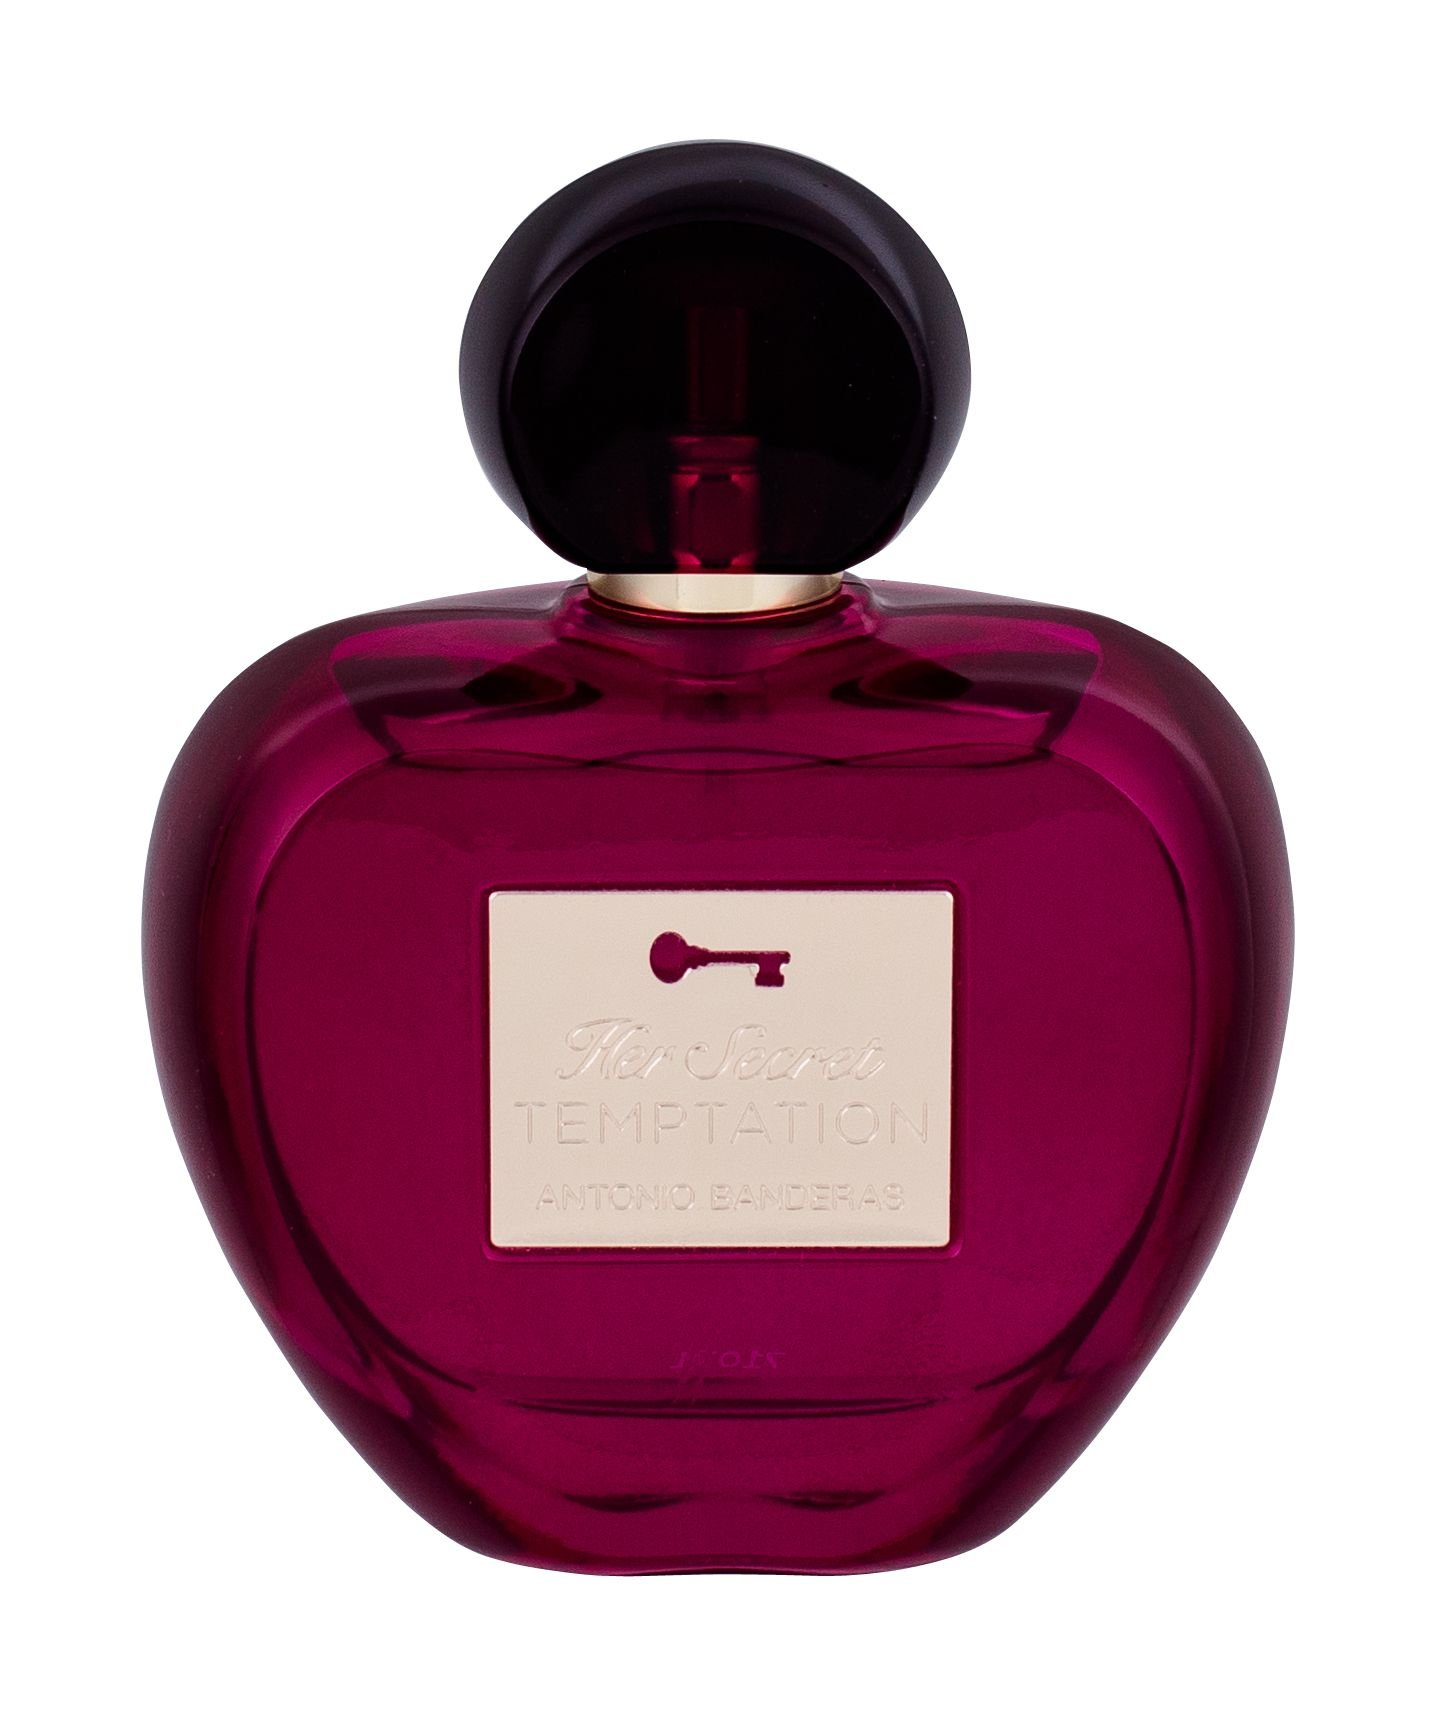 Antonio Banderas Her Secret Temptation EDT 80ml